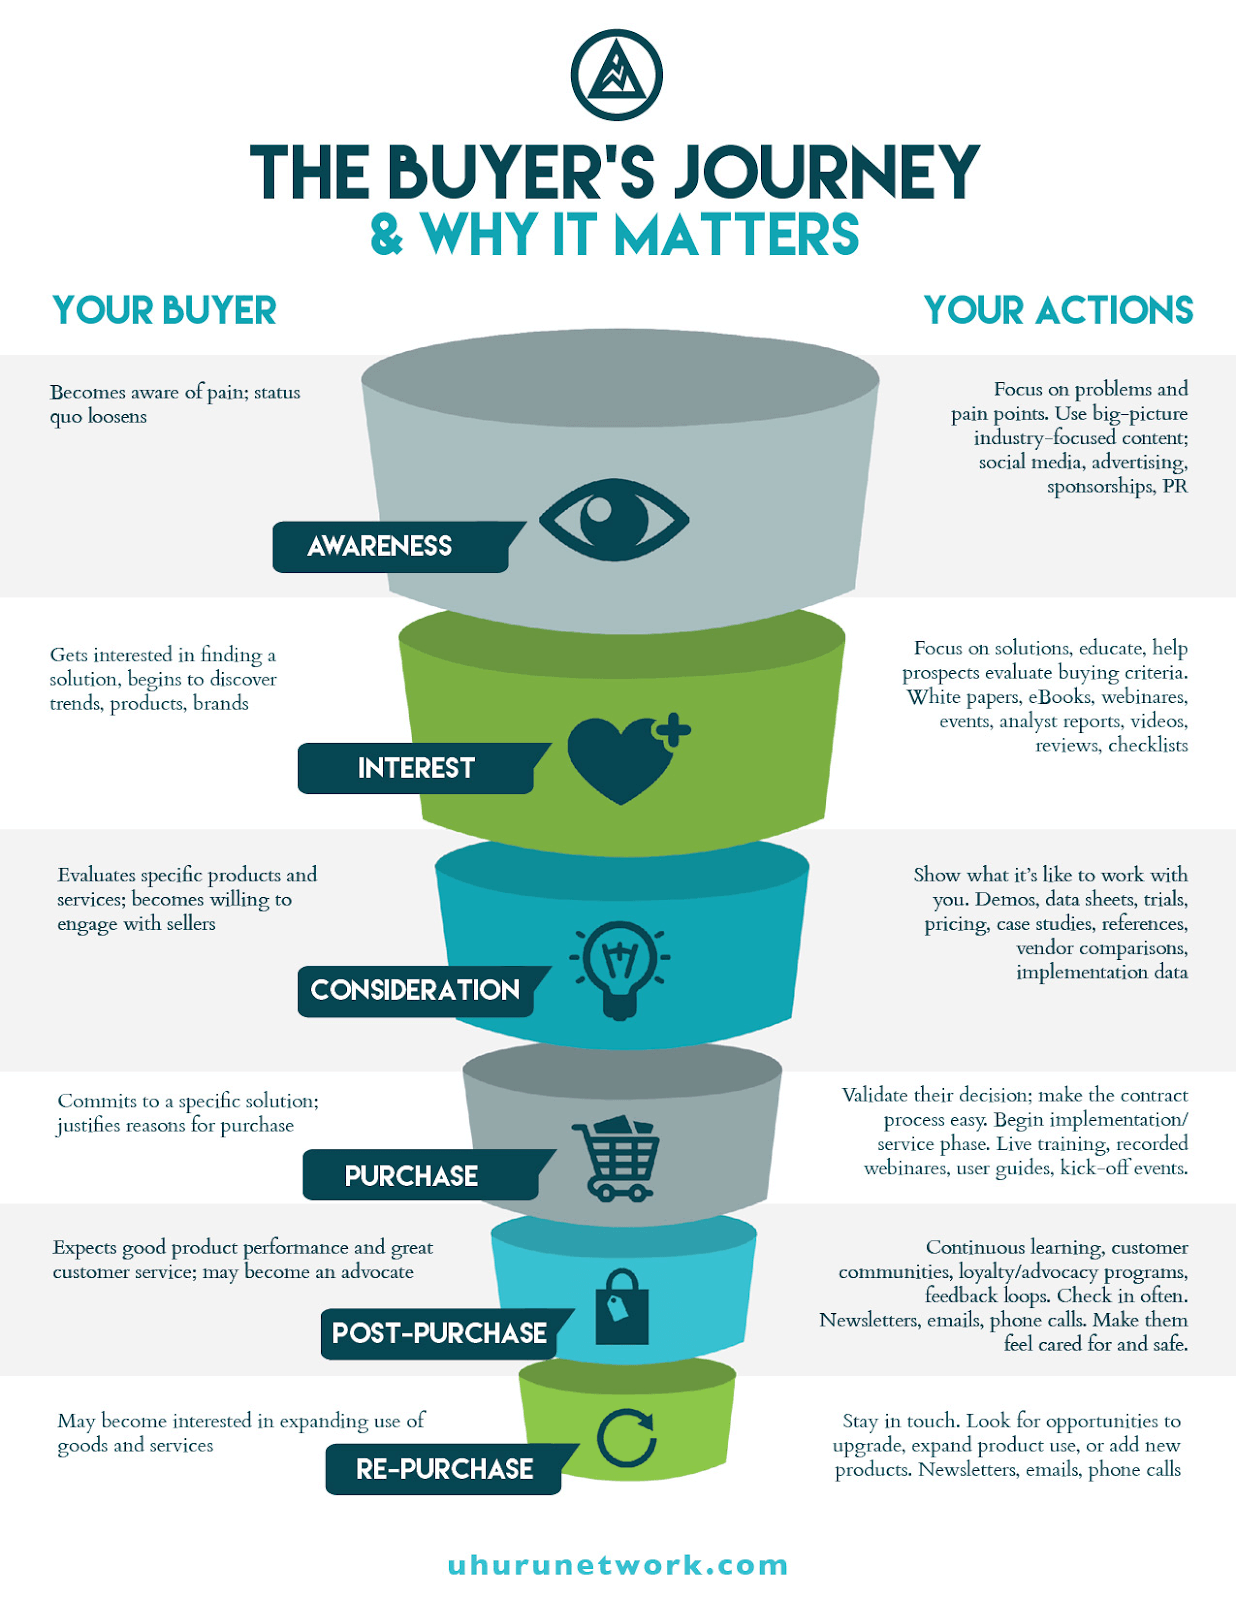 The Buyer Journey Map and Why it Matters. Each Stage with two different perspectives. One from Your buyer's side and one from your side's actions.